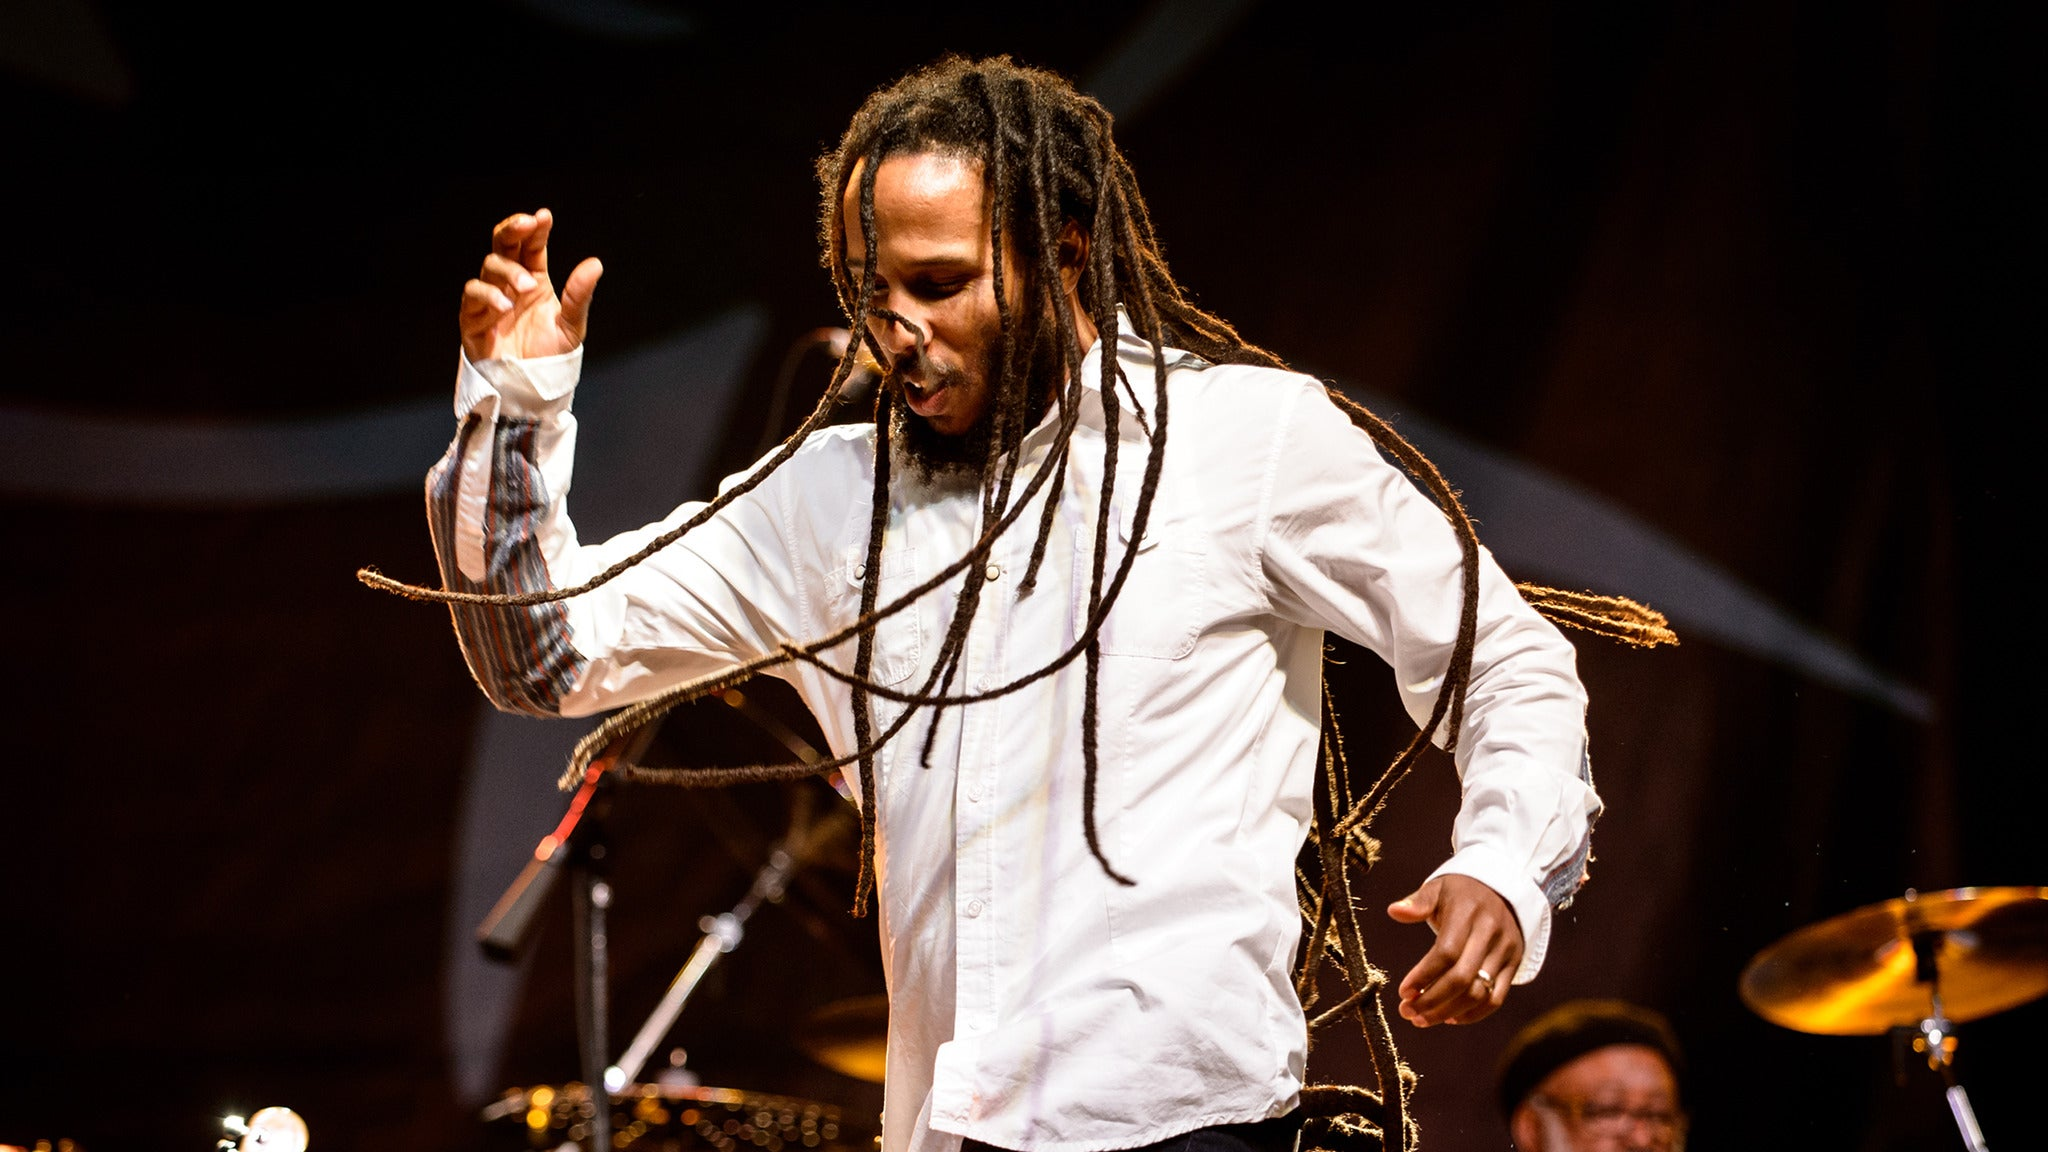 ZIGGY MARLEY at Barrymore Theatre